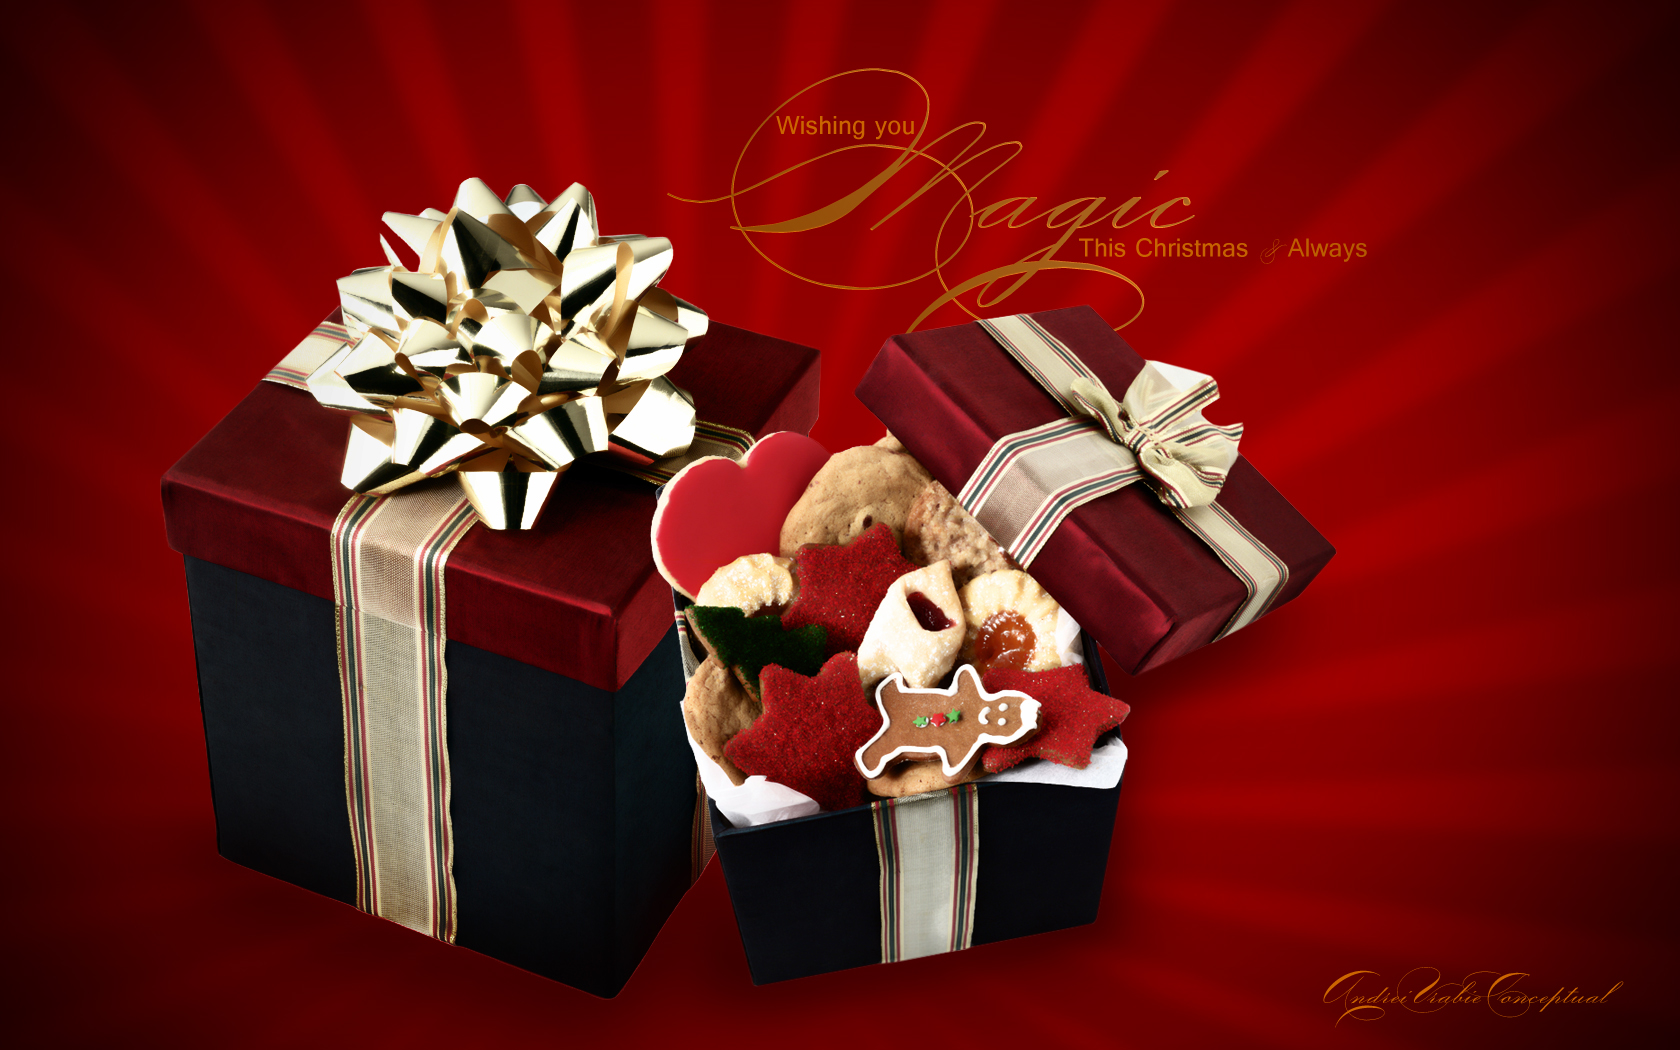 Christmas   Gifts Wallpaper   Christian Wallpapers and Backgrounds 1680x1050